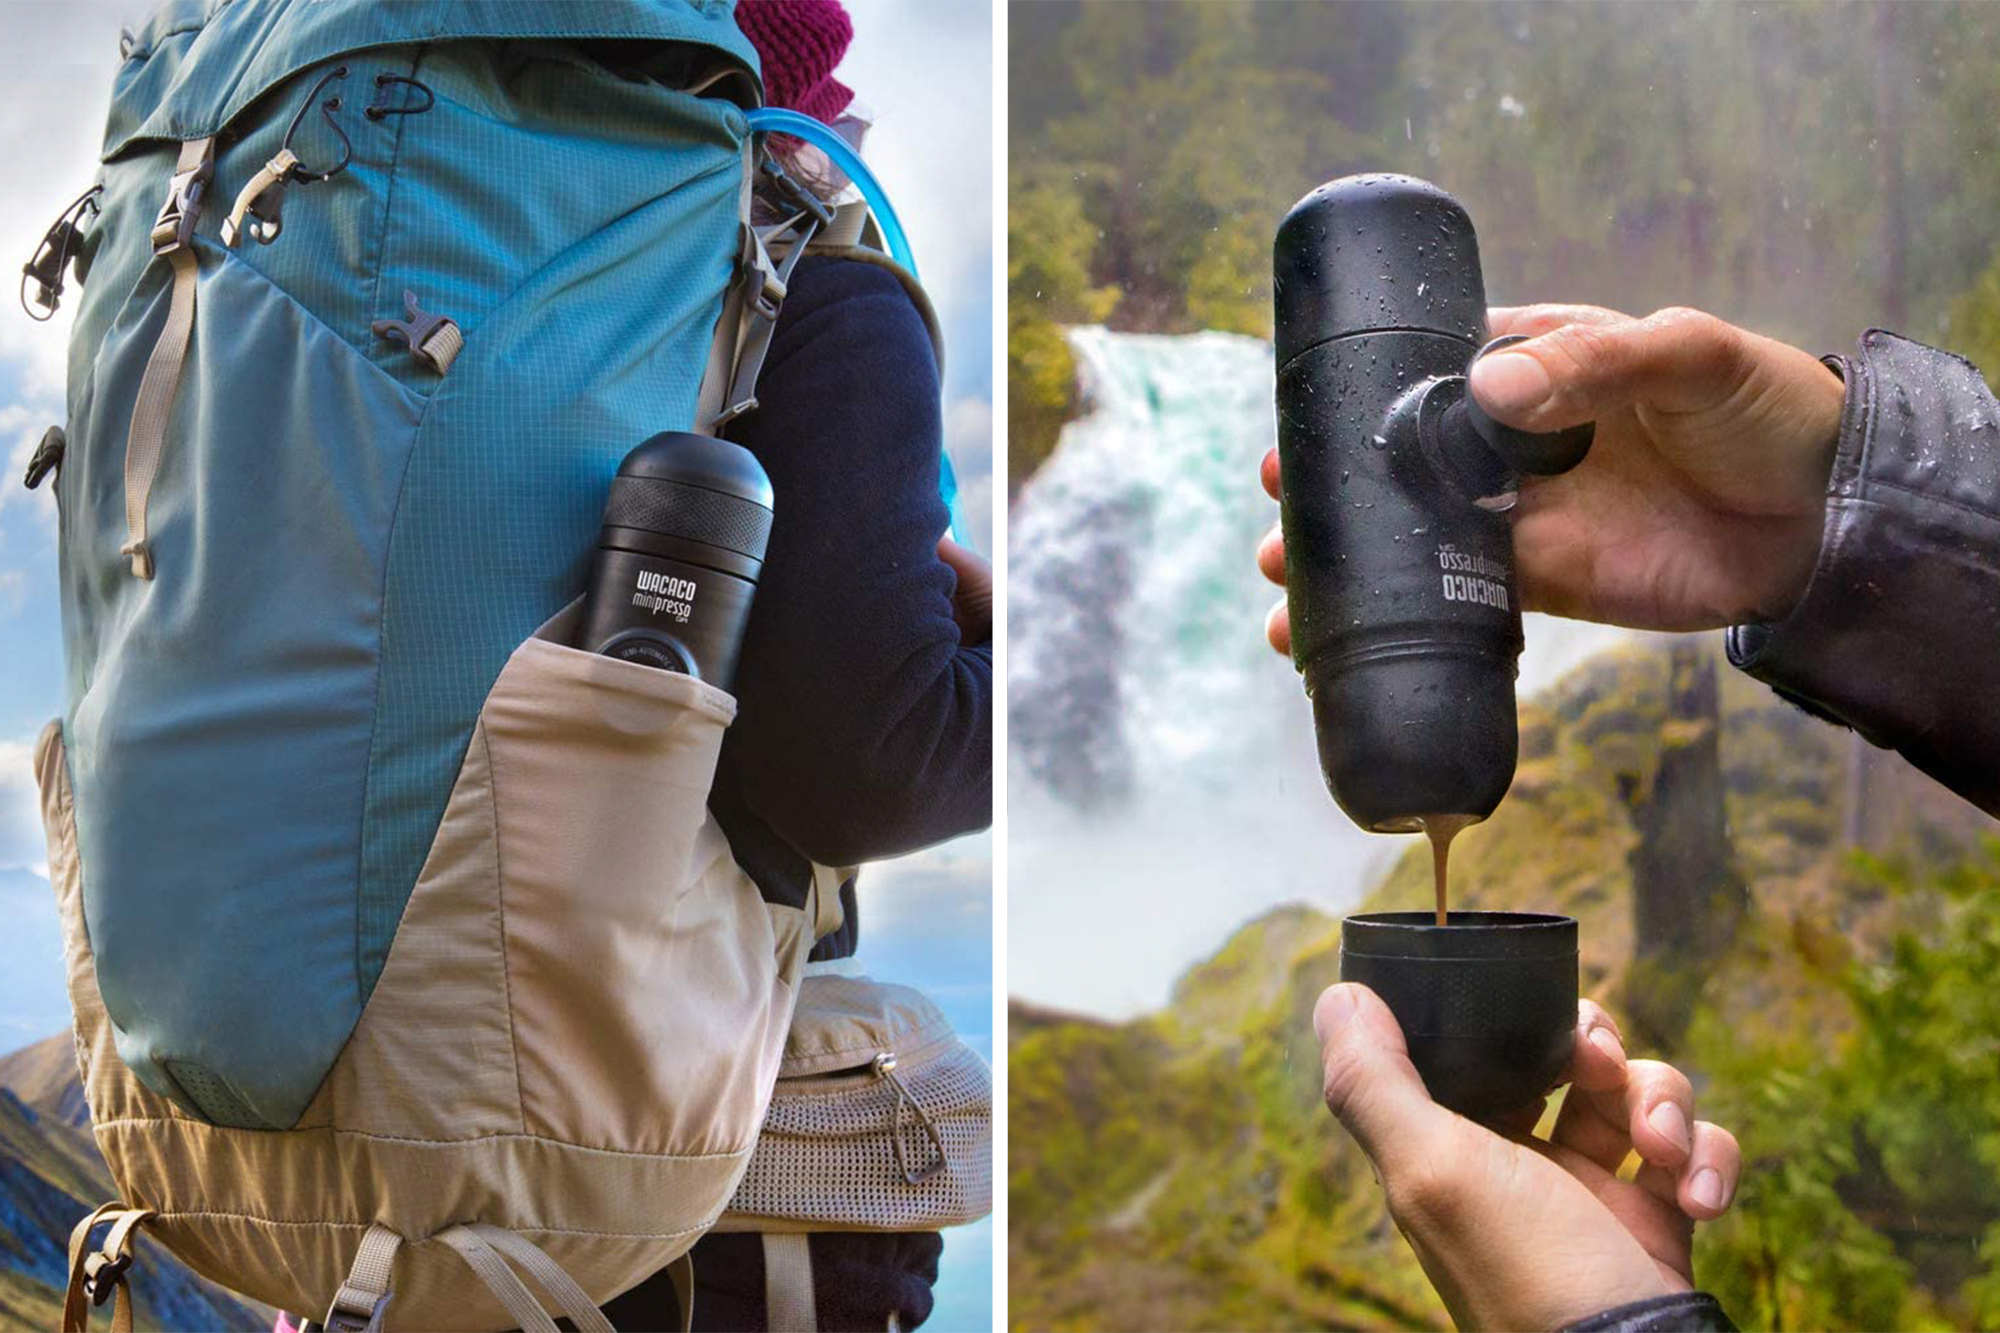 Wacaco minipresso in a hiking backpack and making espresso by a waterfall